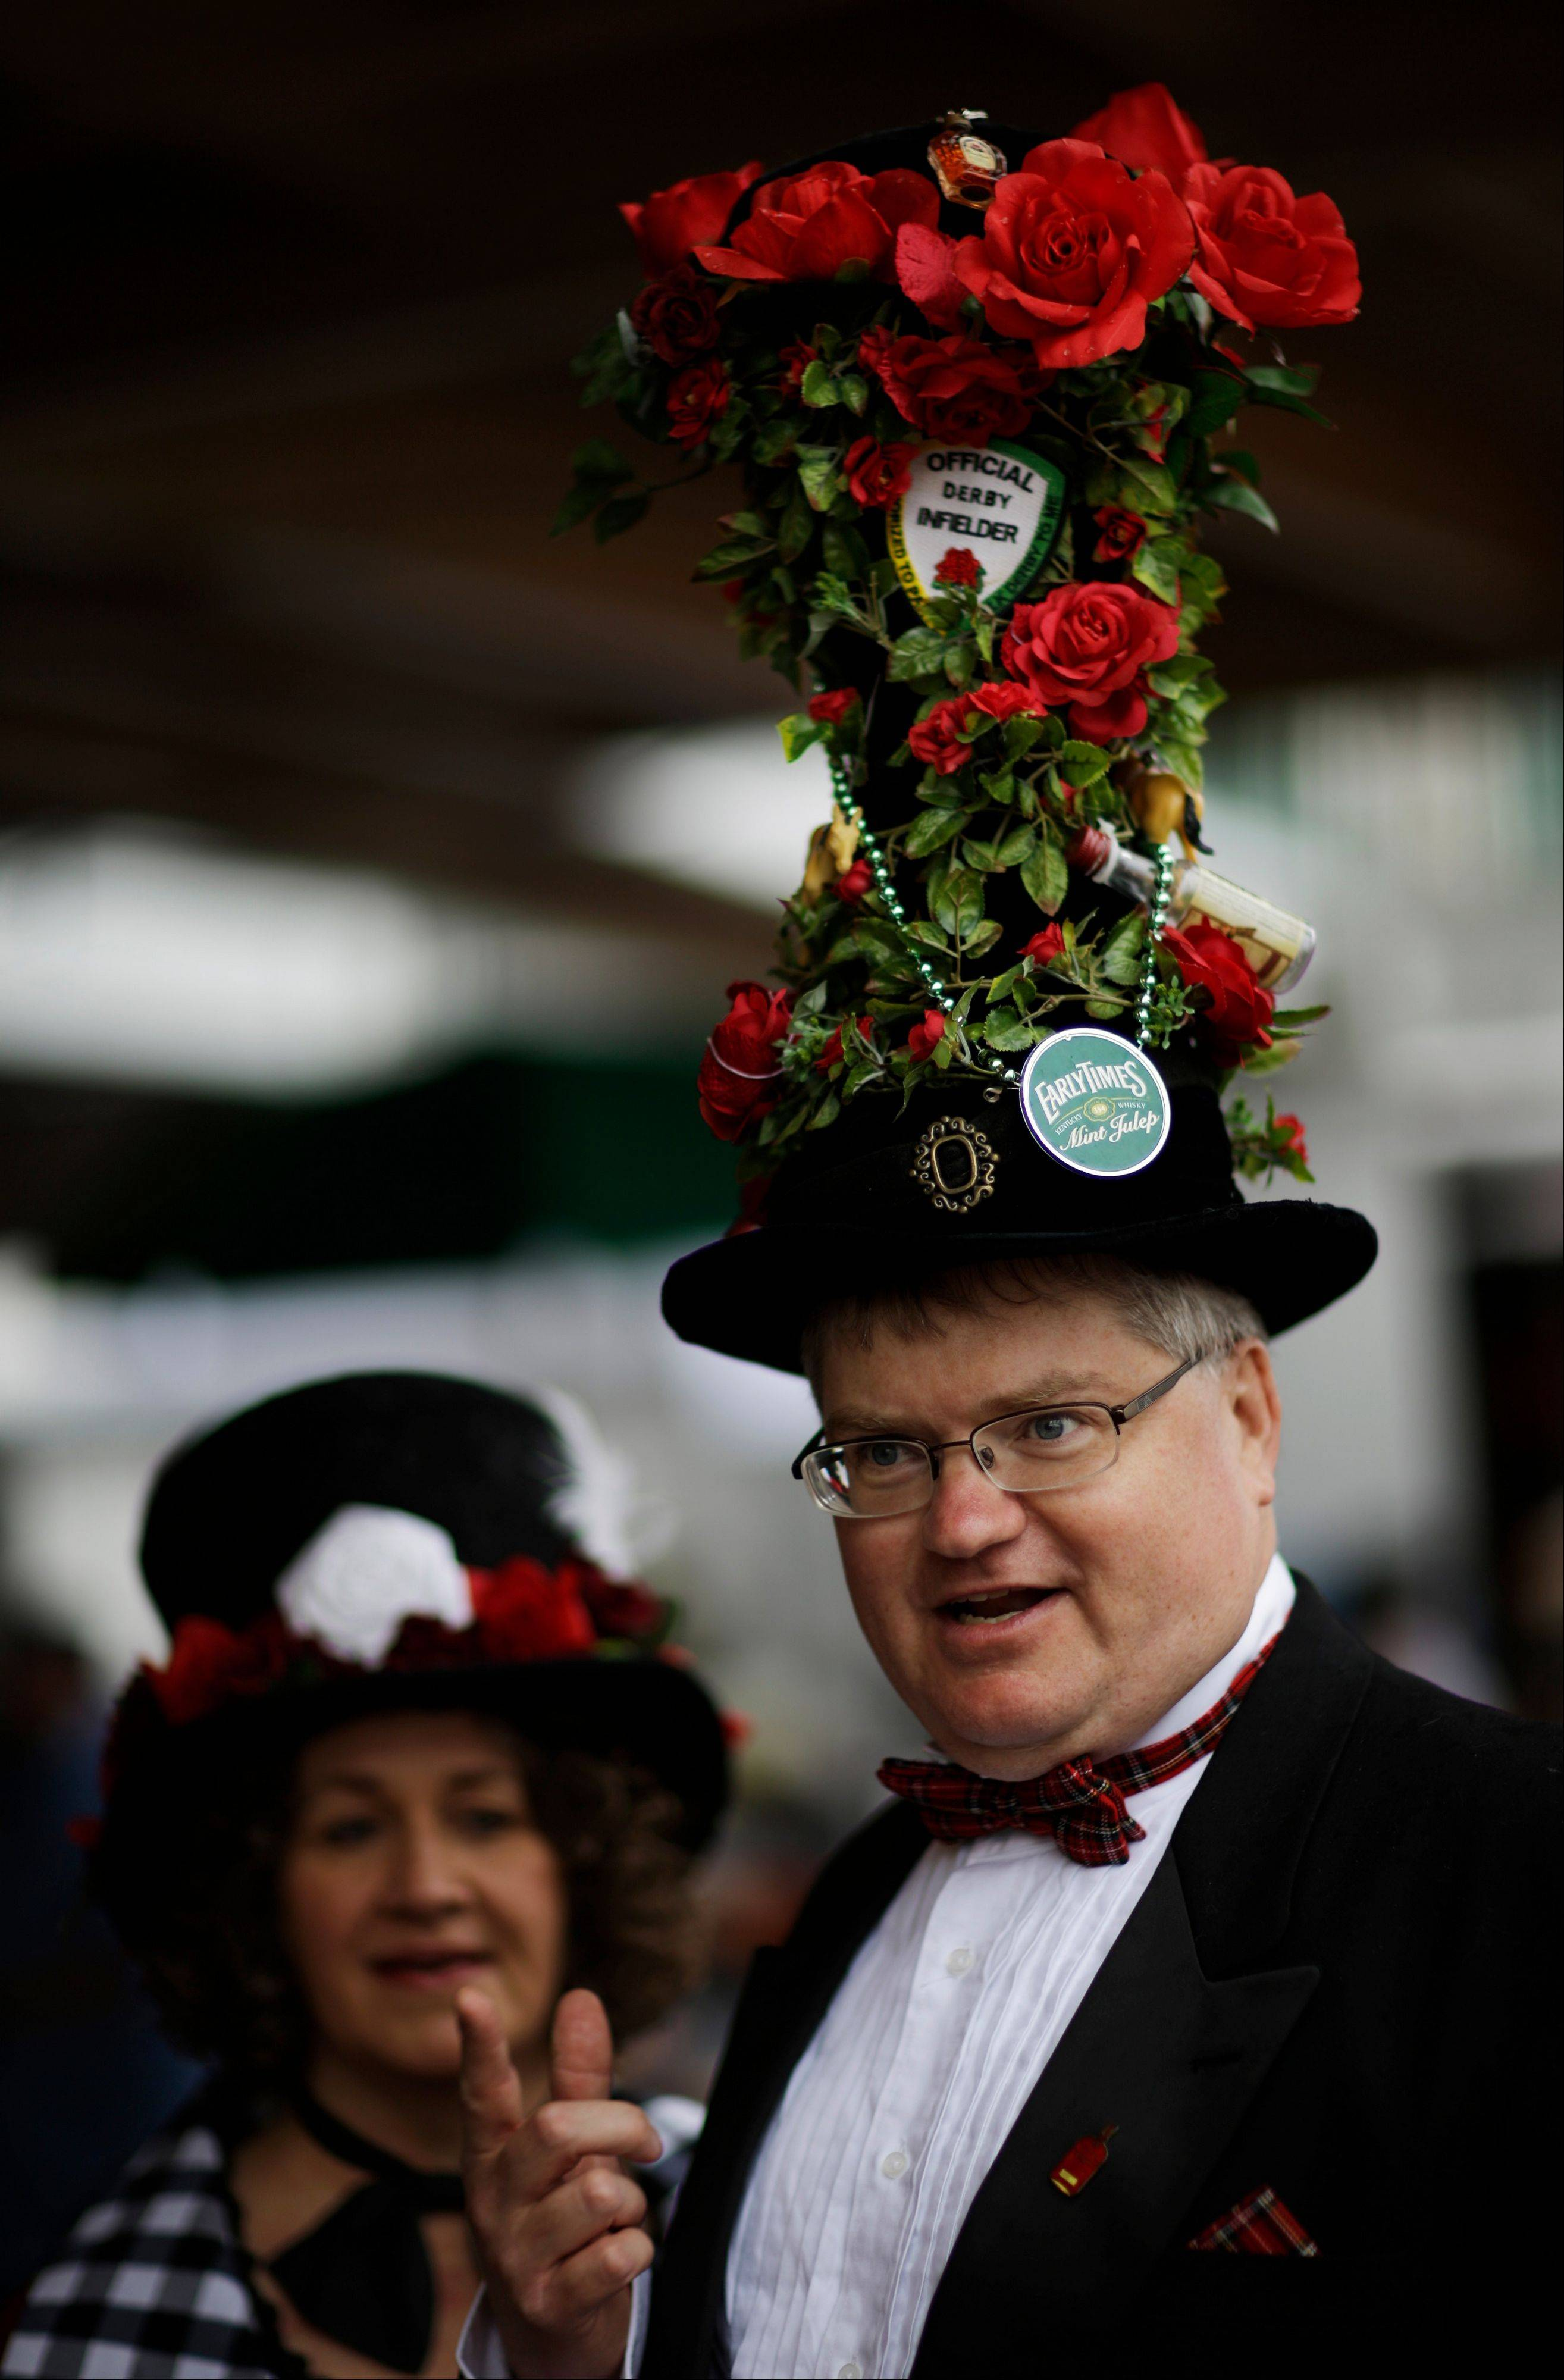 Tim Rask, from Iowa City, Iowa, shows off his fancy hat with Theresa Klingenberg before the running of the 139th Kentucky Derby at Churchill Downs Saturday.